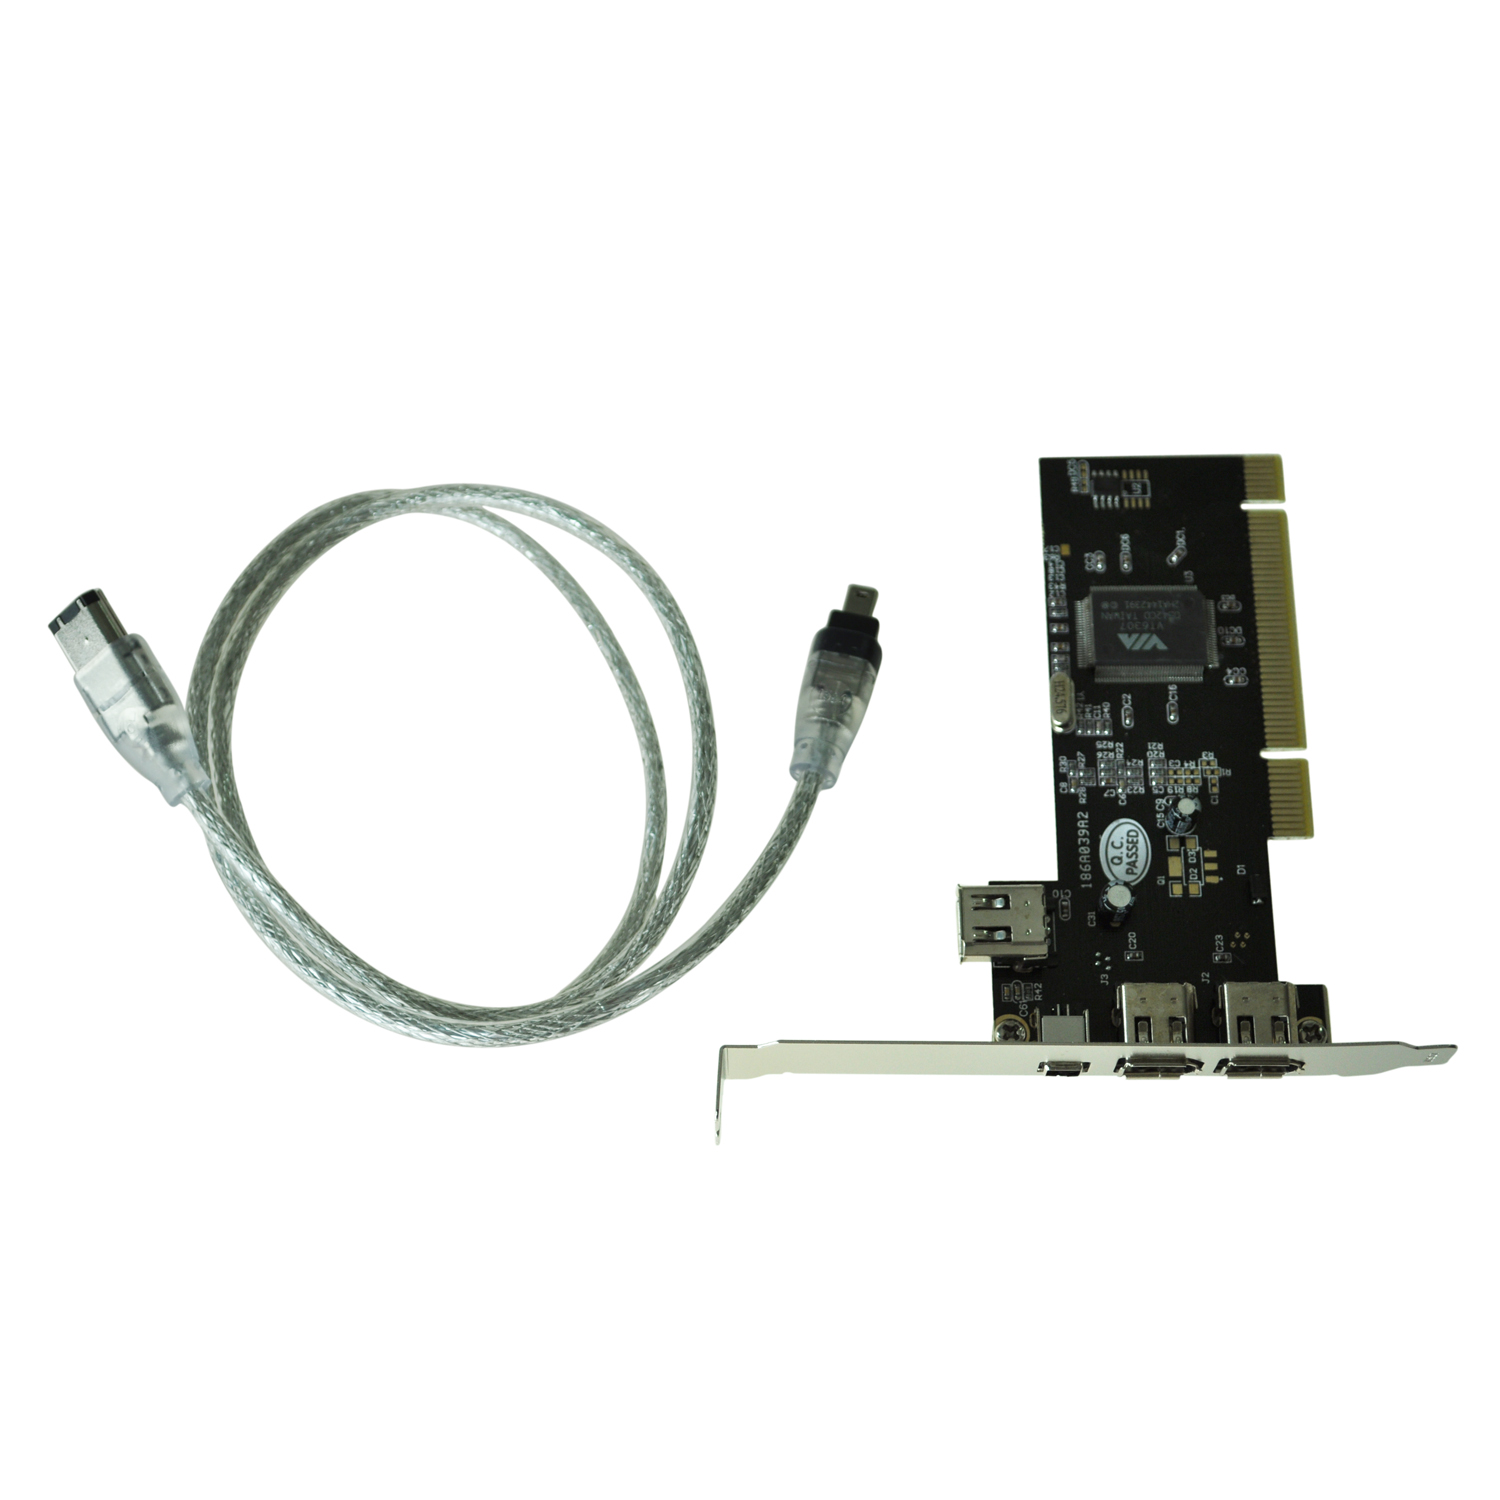 Hot New PCI FireWire IEEE 1394 3 + 1 Port Card + 4/6 Pin Cable UK(China (Mainland))